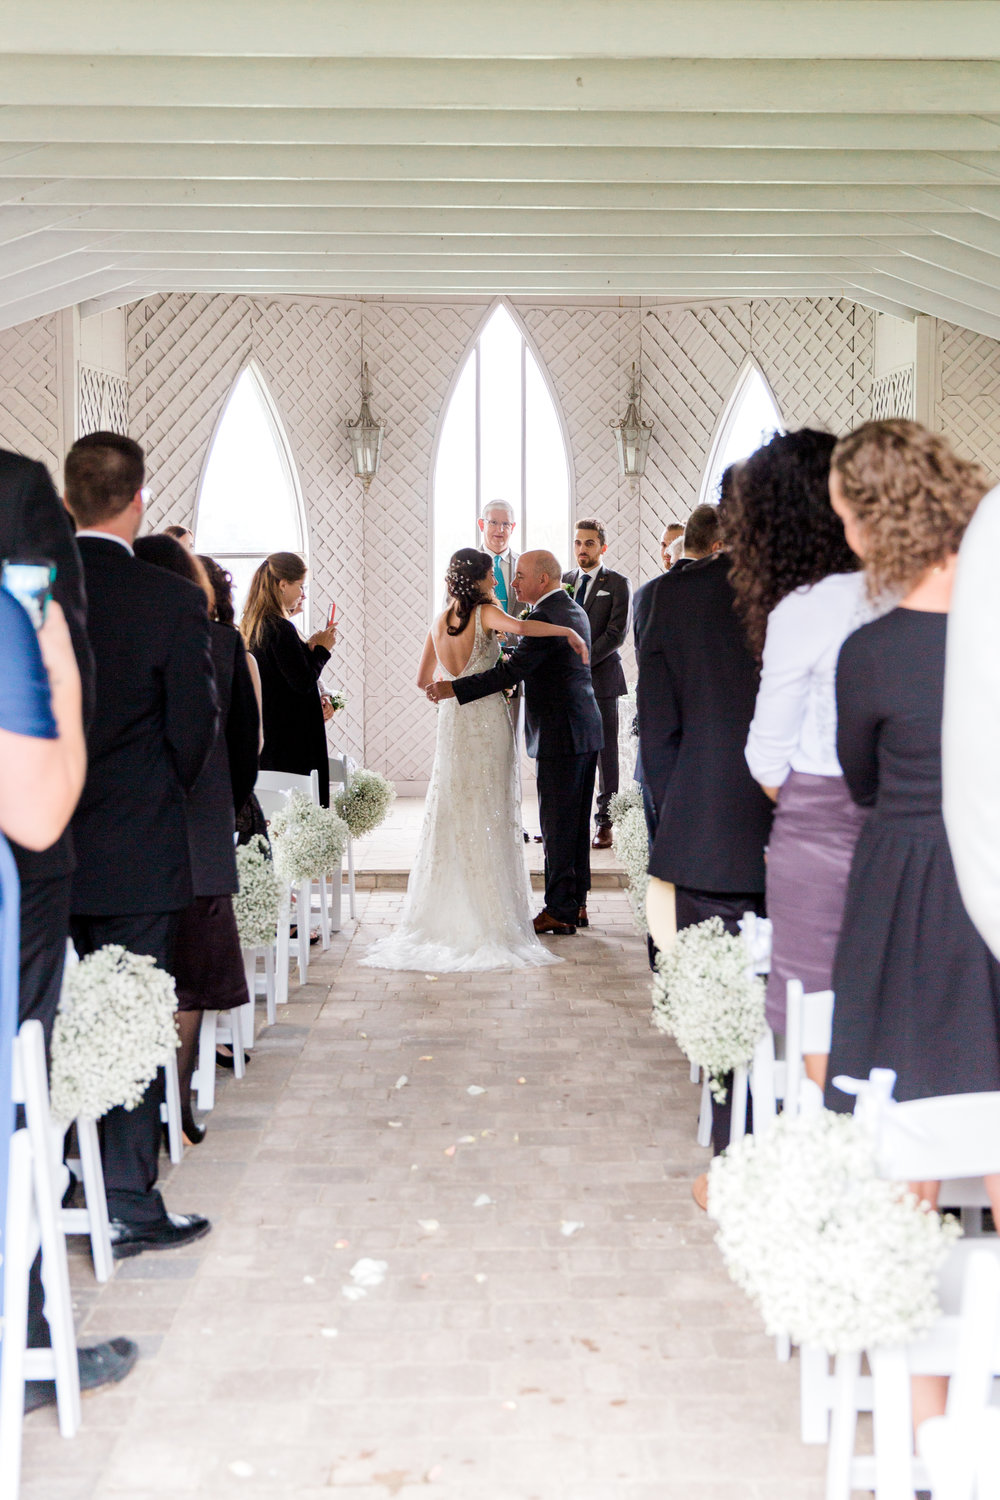 Amir-Golbazi-Danielle-Giroux-Photography_Toronto-Wedding_Cedarwood_Rachel-Paul_169.jpg